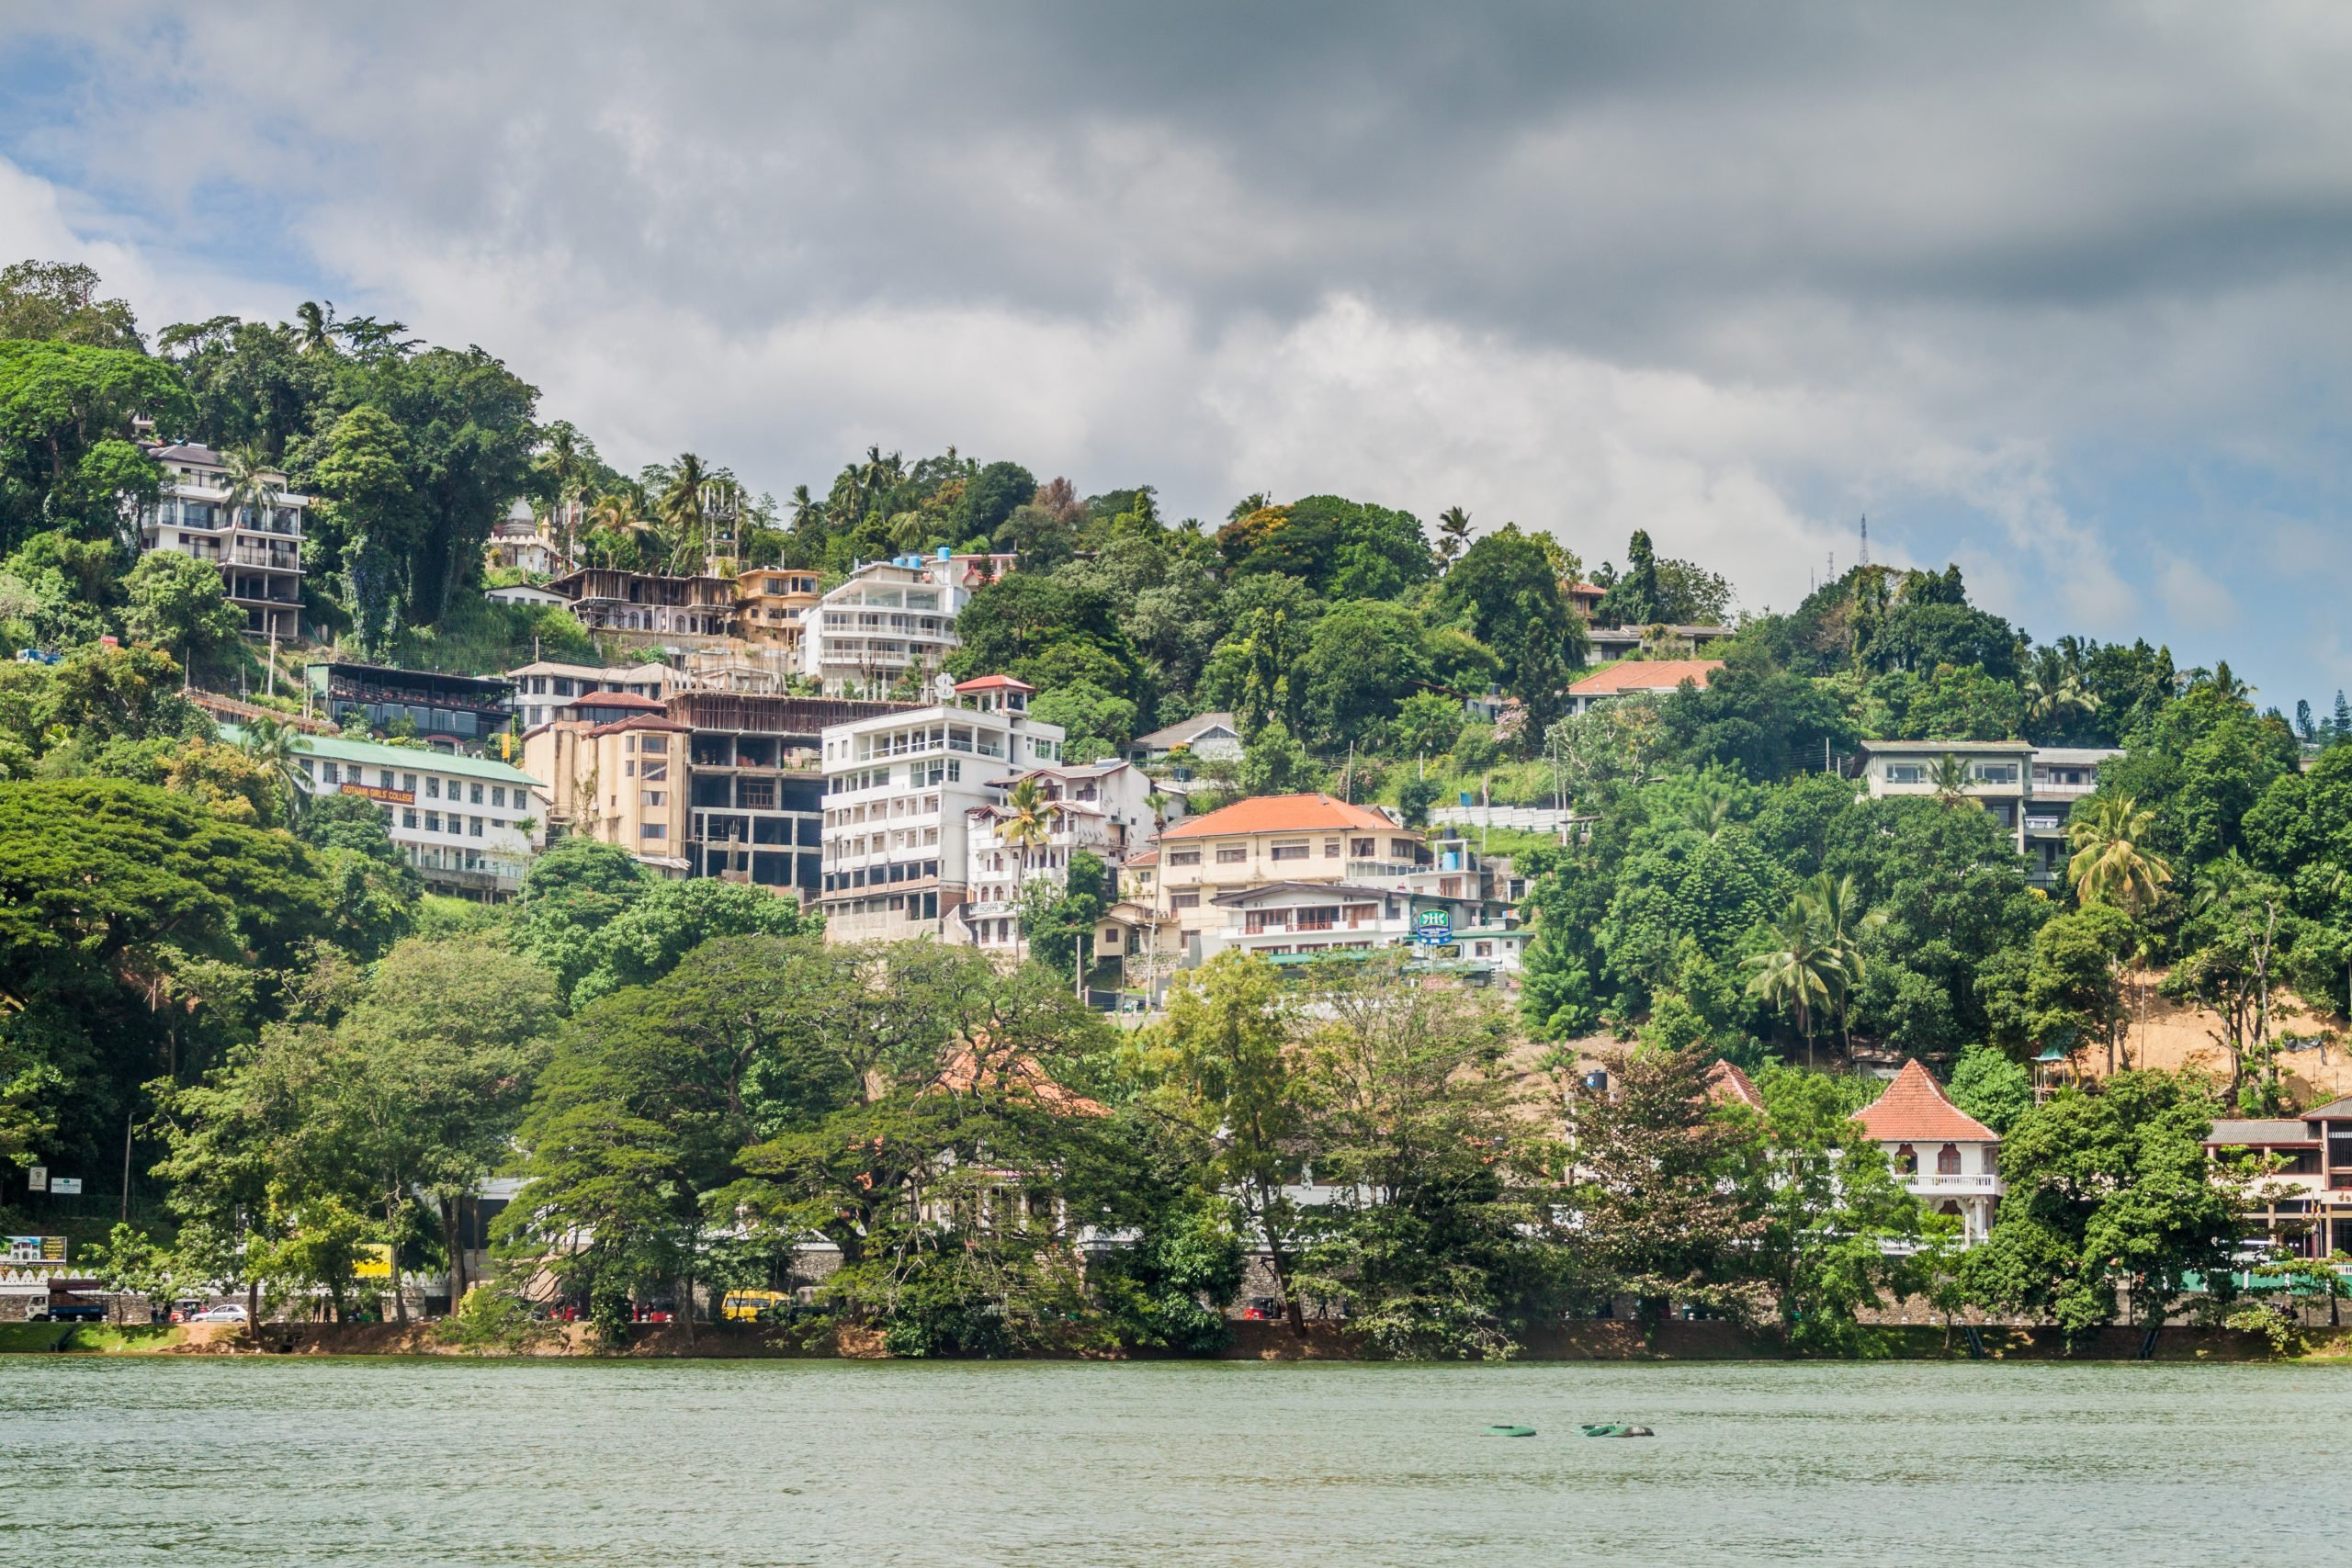 houses on slopes in a lake in Kandy Sri Lanka